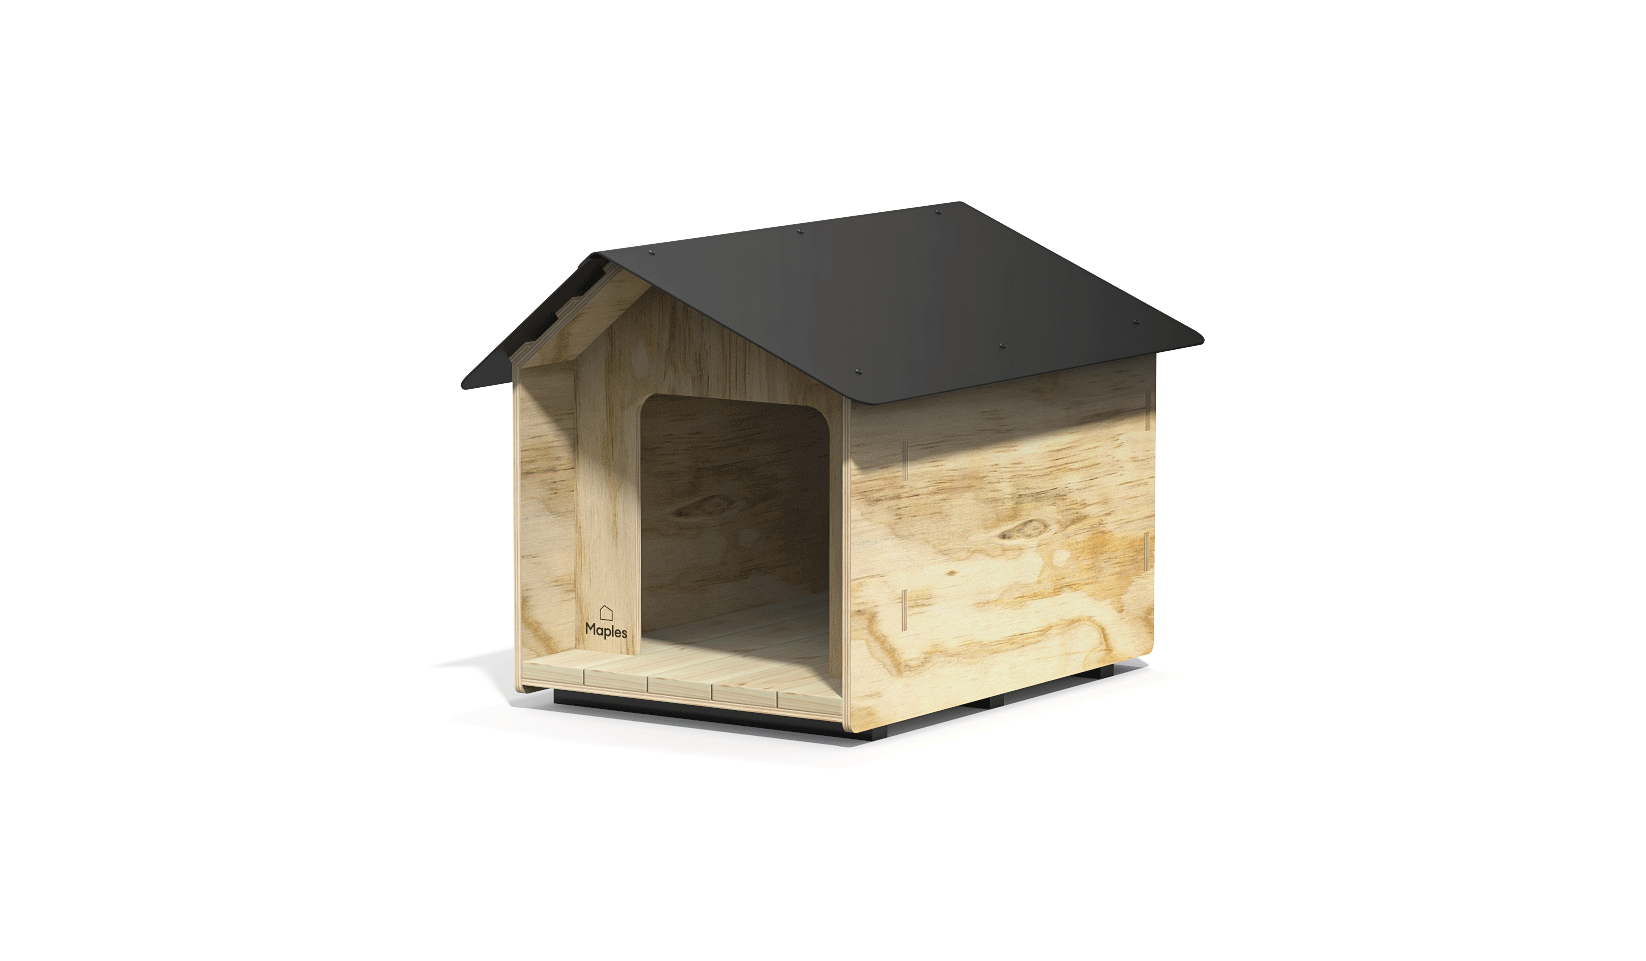 Maples kennel